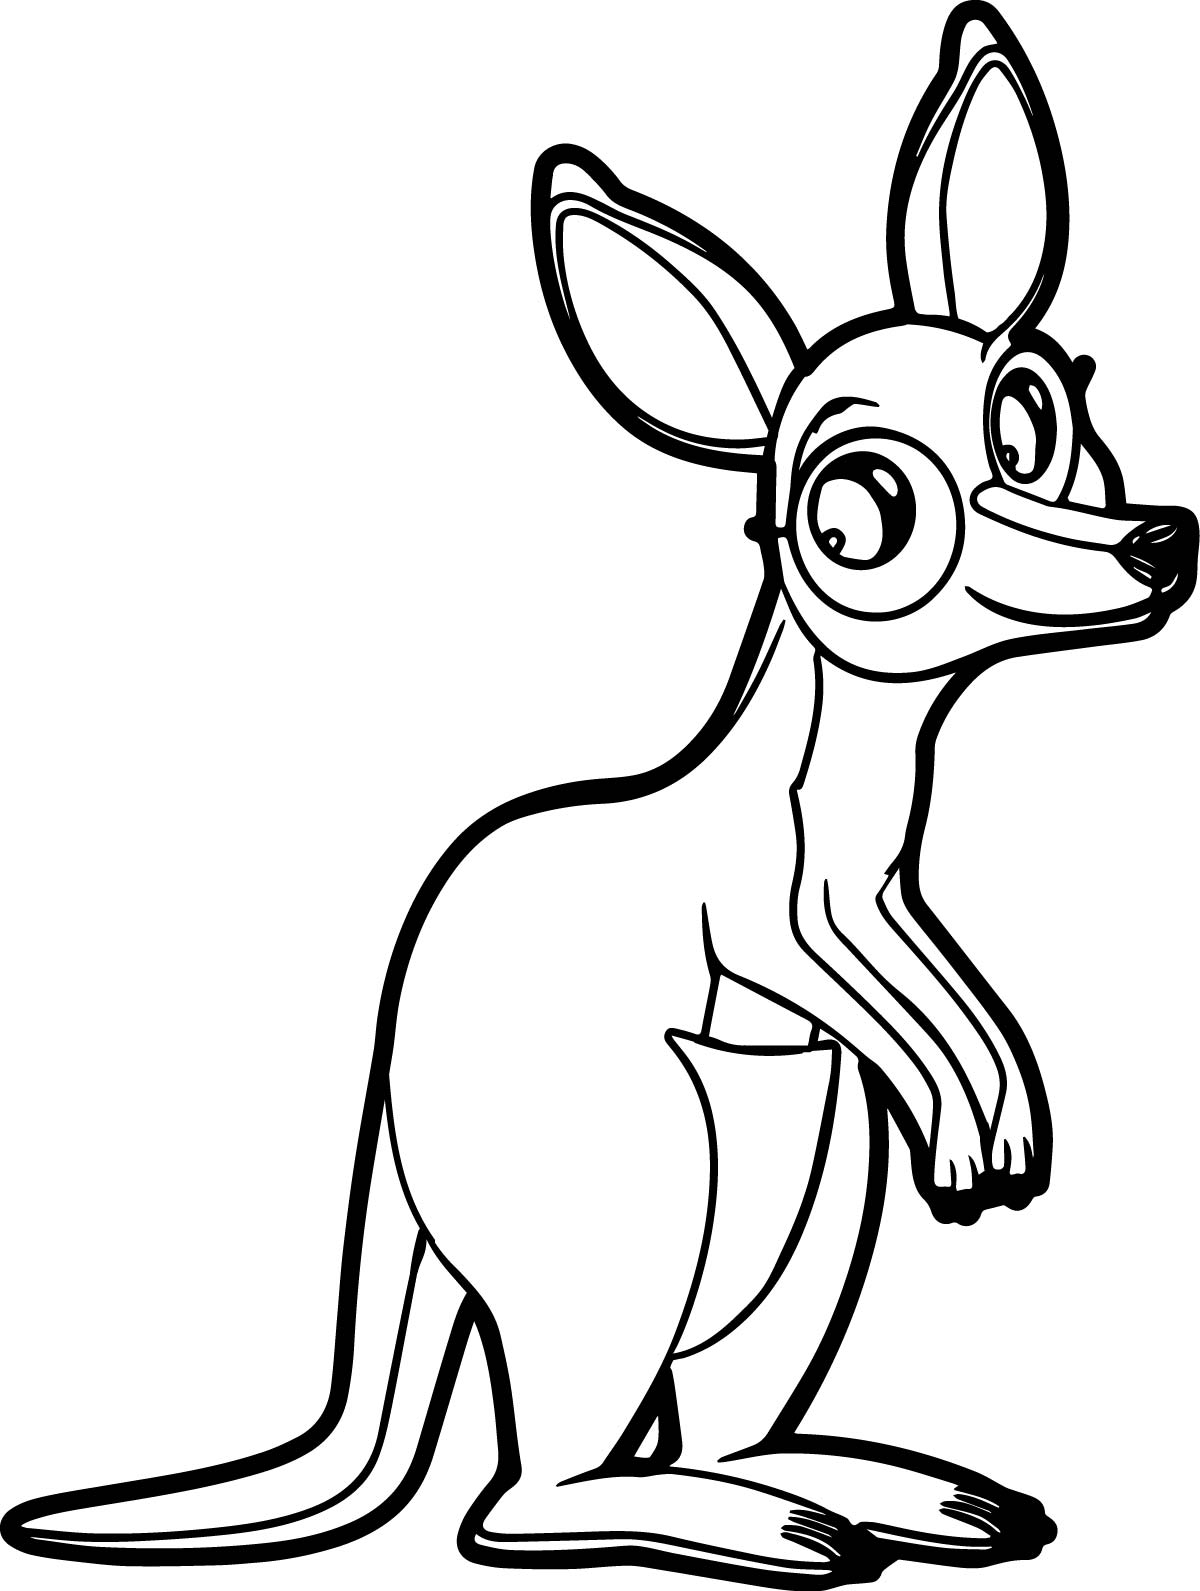 Marsupial coloring #2, Download drawings